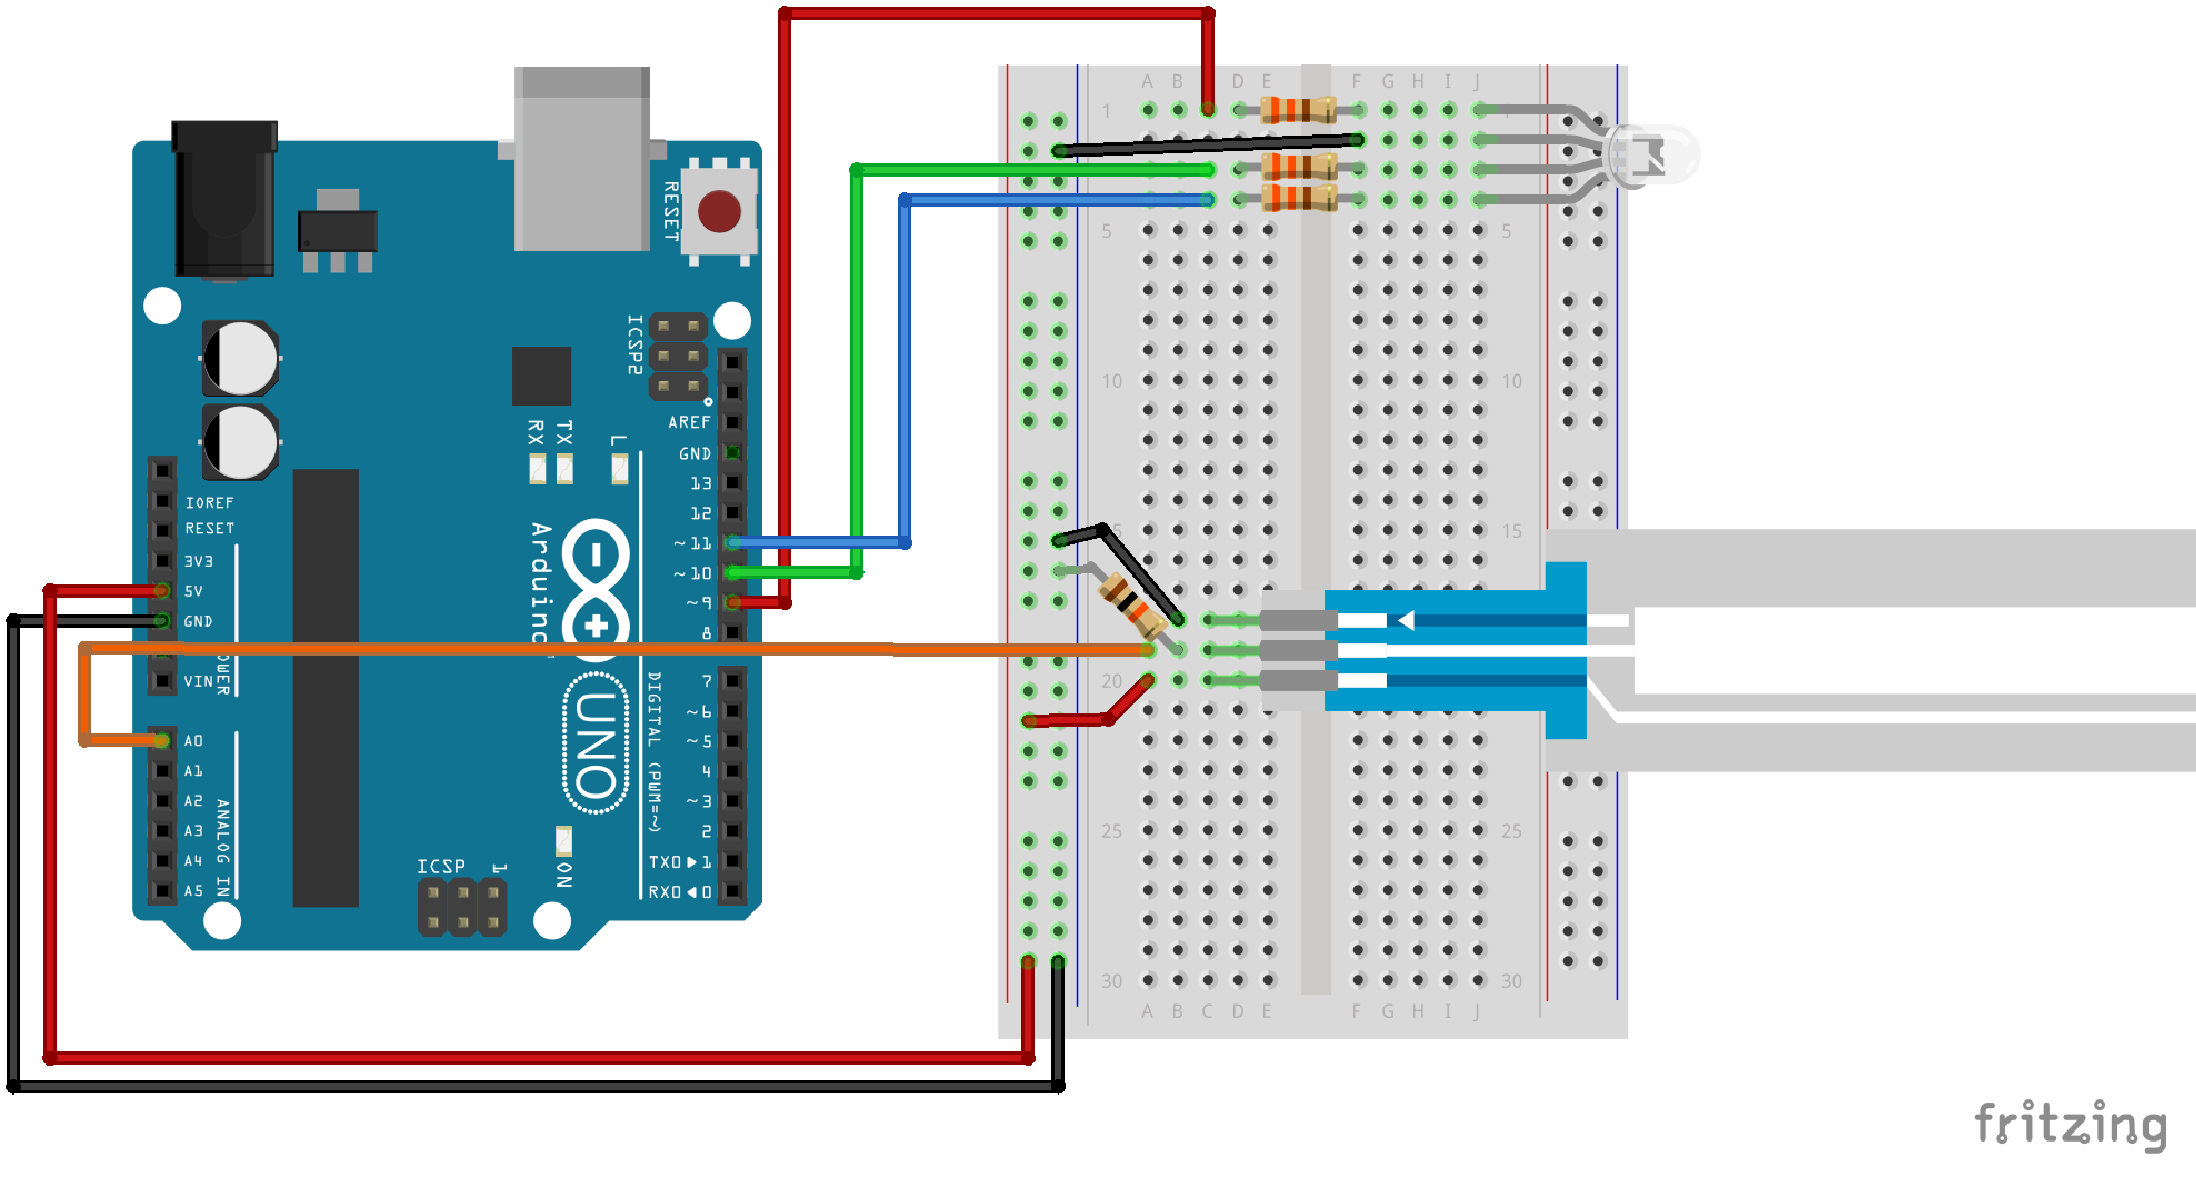 Arduino_circuit_10_02 01 sik experiment guide for arduino v3 2 learn sparkfun com arduino wiring diagram online at soozxer.org